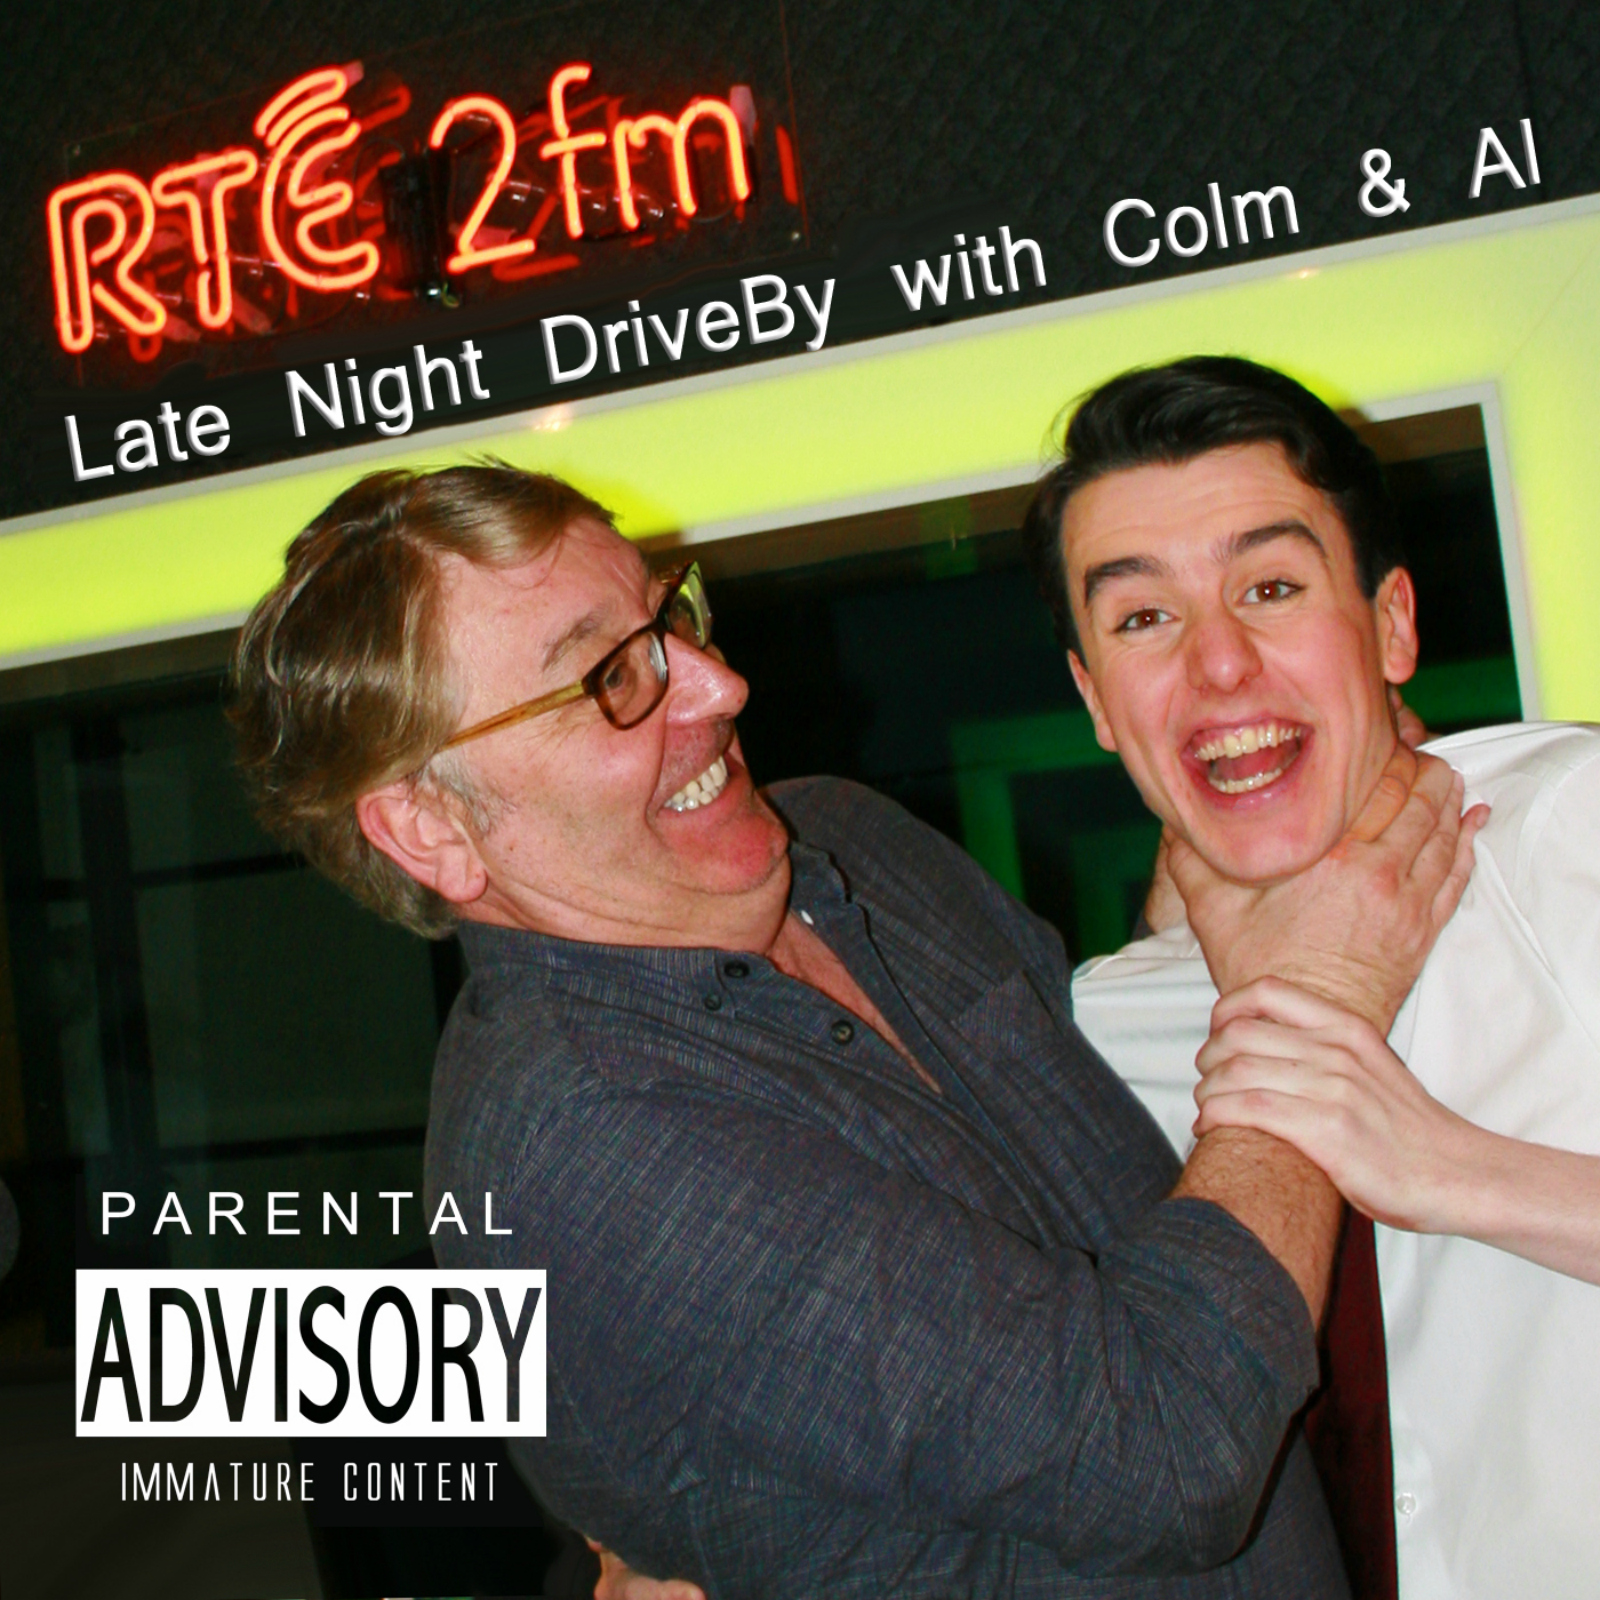 RTÉ - Late Night Drive By With Colm and Al